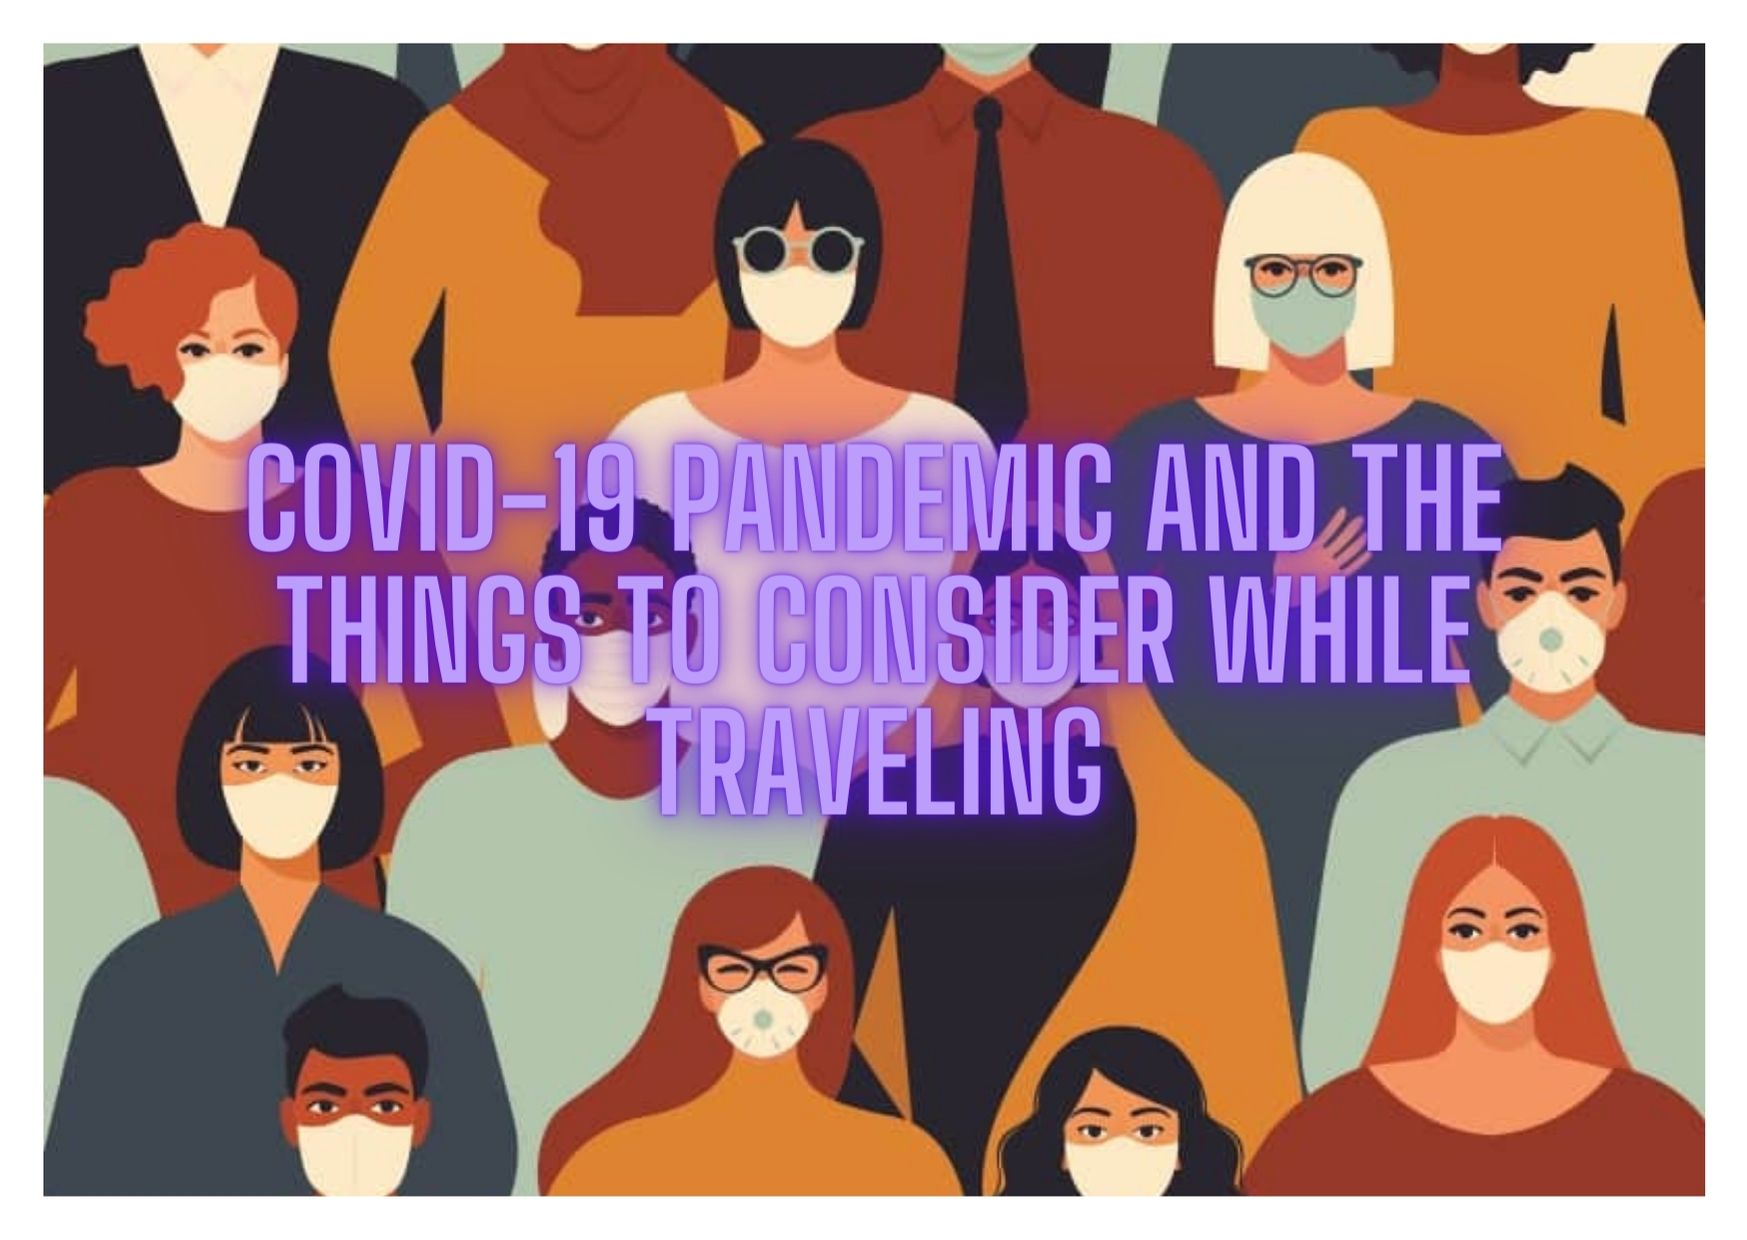 COVID-19 Pandemic and the things to consider while traveling